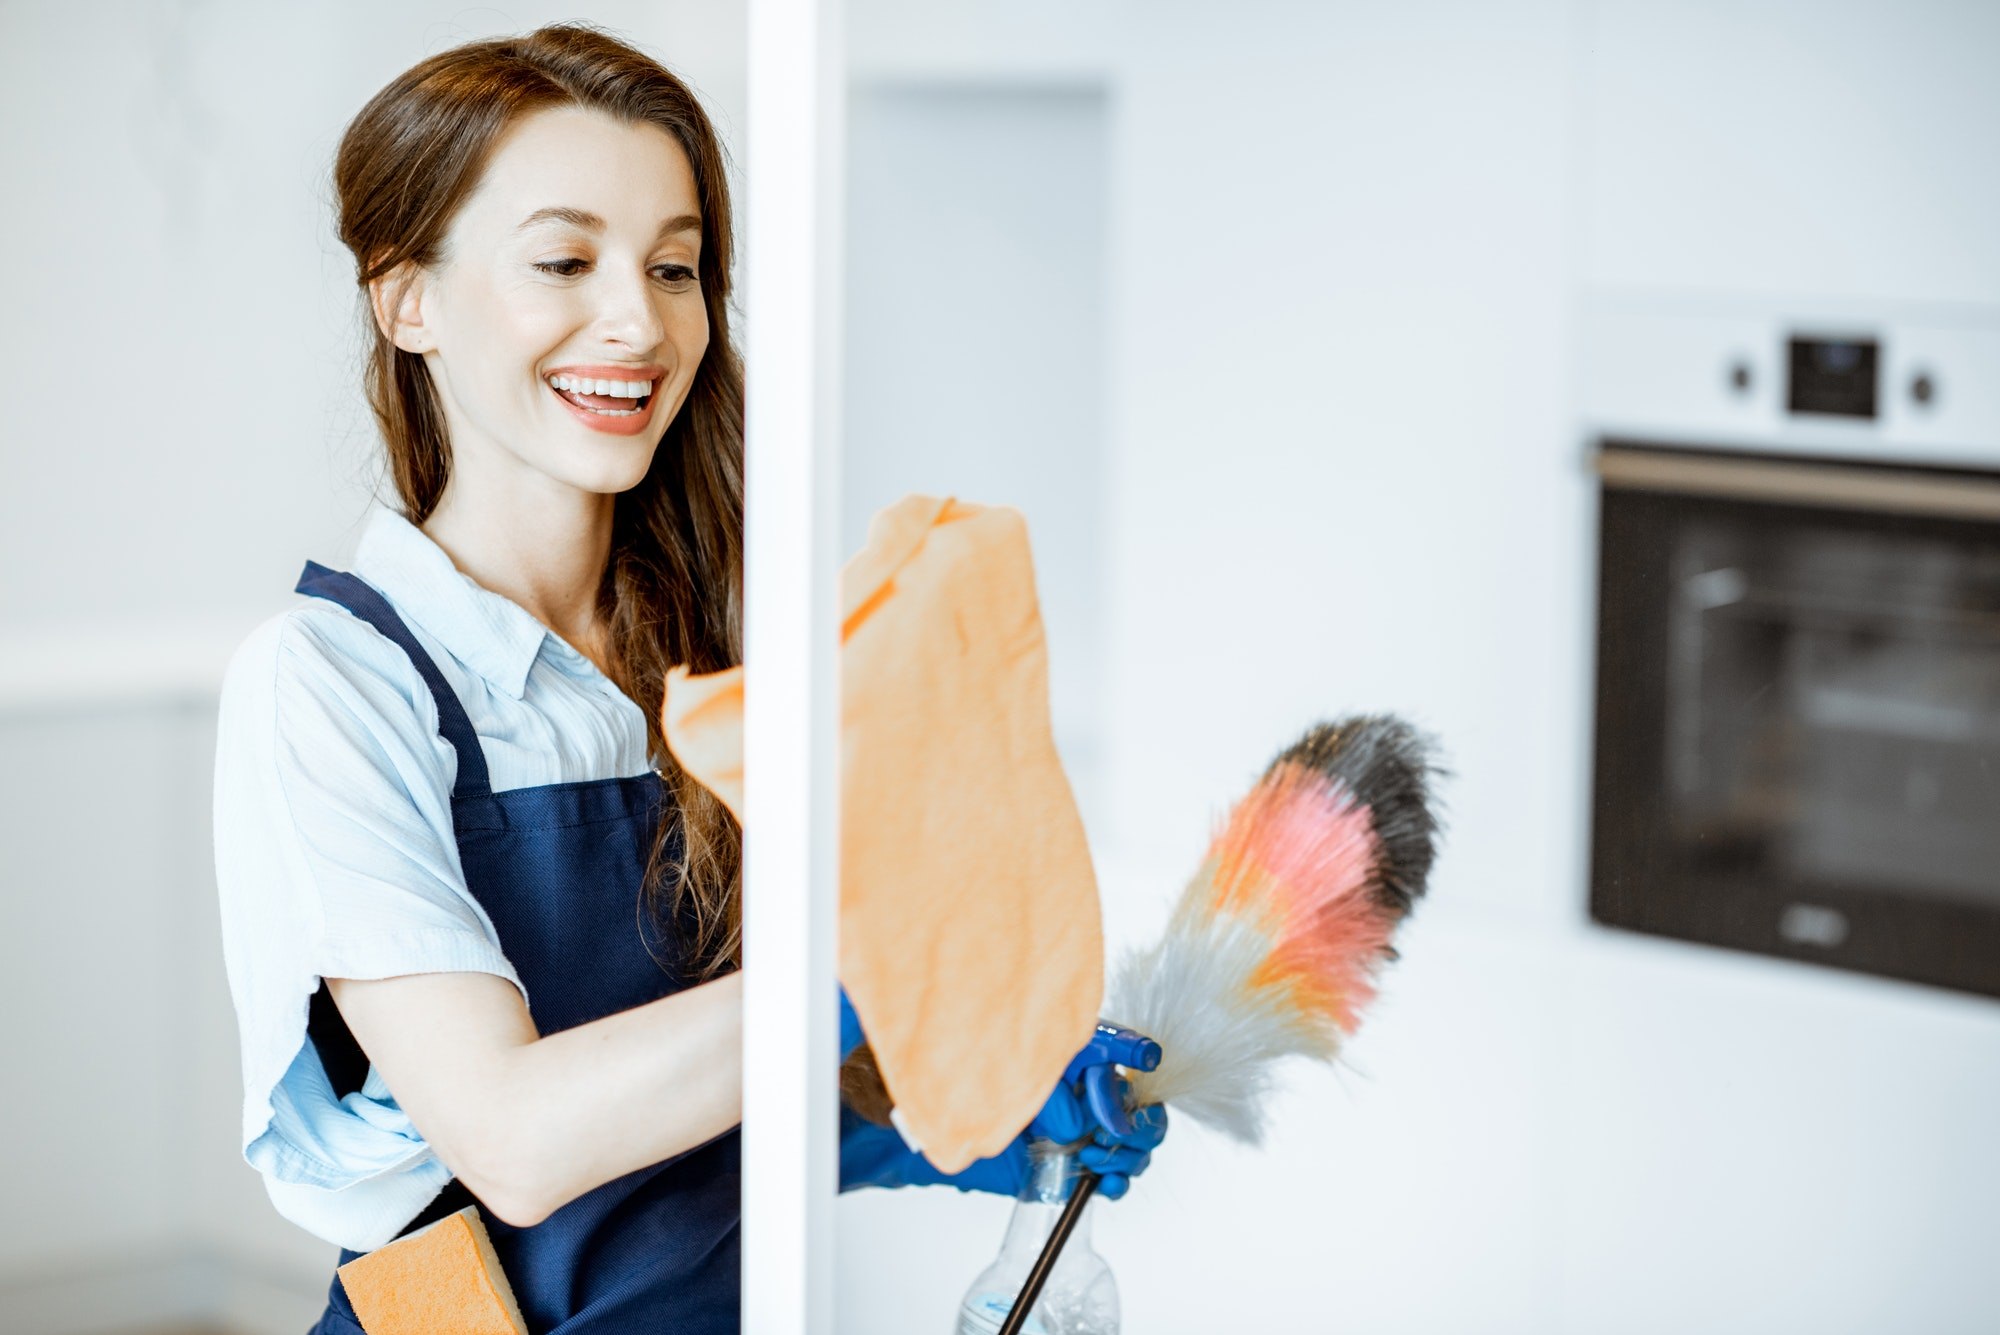 Woman cleaning at home